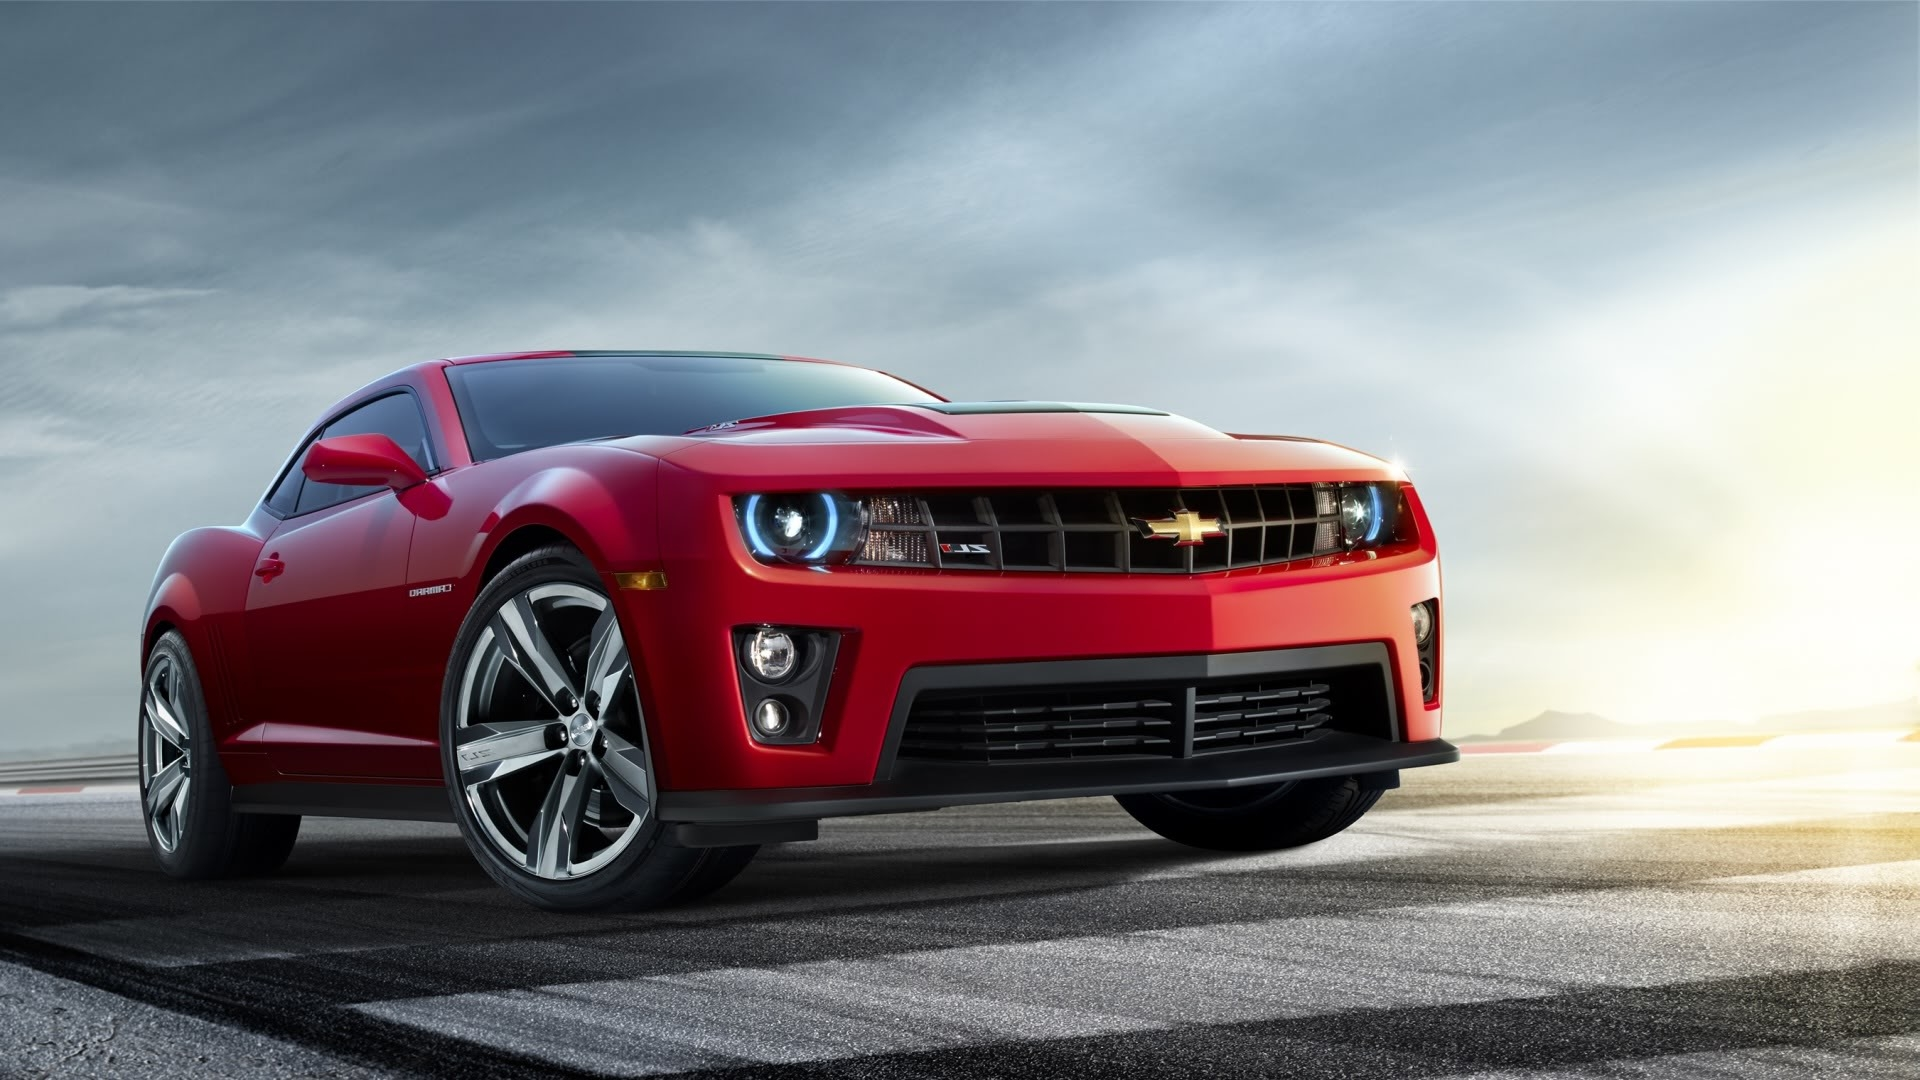 Chevrolet Camaro Red Wallpaper High Def